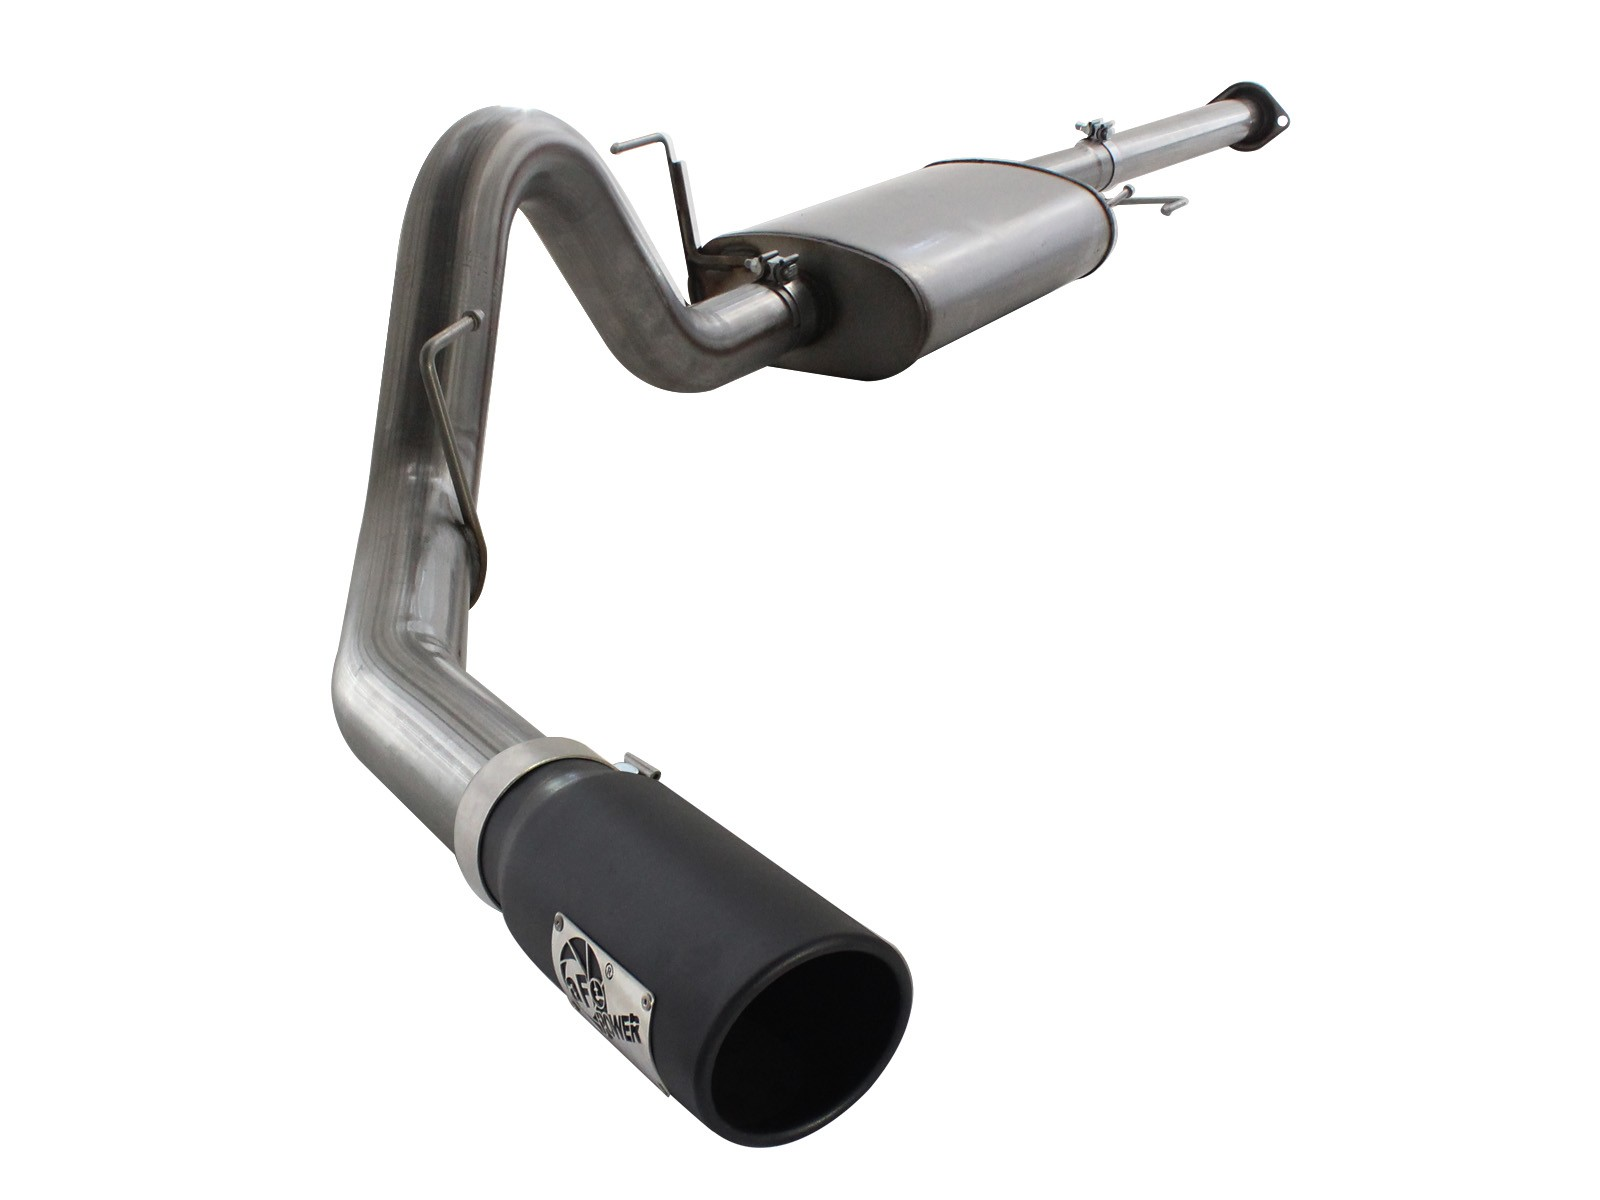 "aFe POWER 49-43067-B MACH Force-Xp 3"" to 3-1/2"" 409 Stainless Steel Cat-Back Exhaust System"